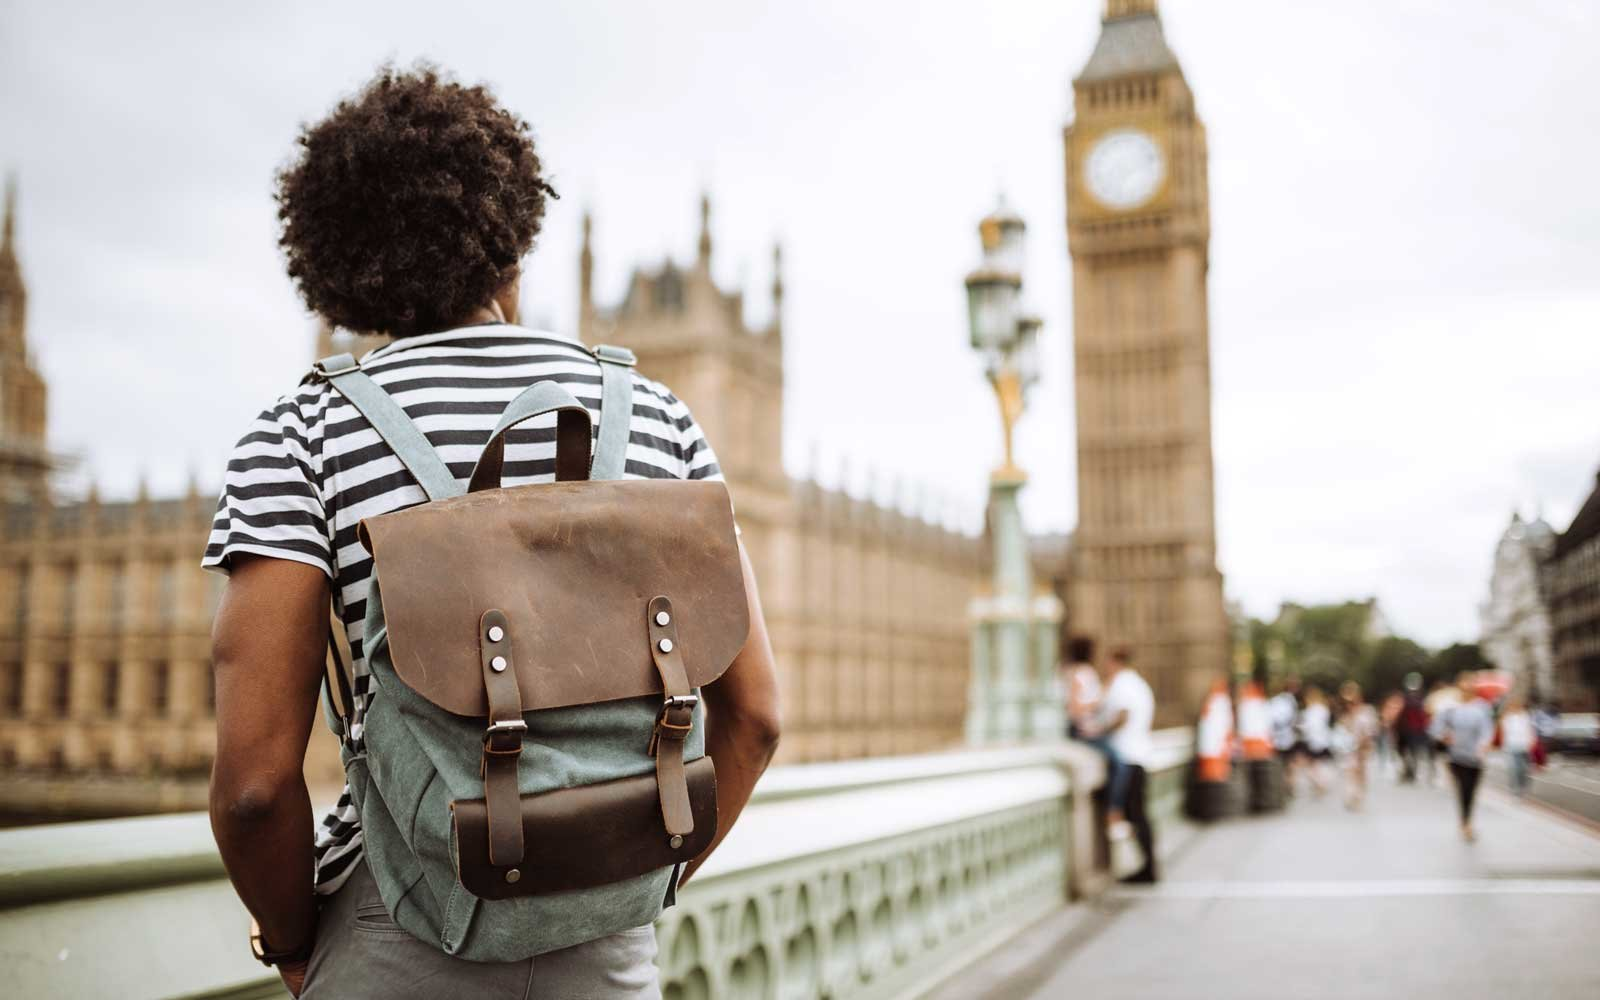 A tourist in London looking at Old Ben.